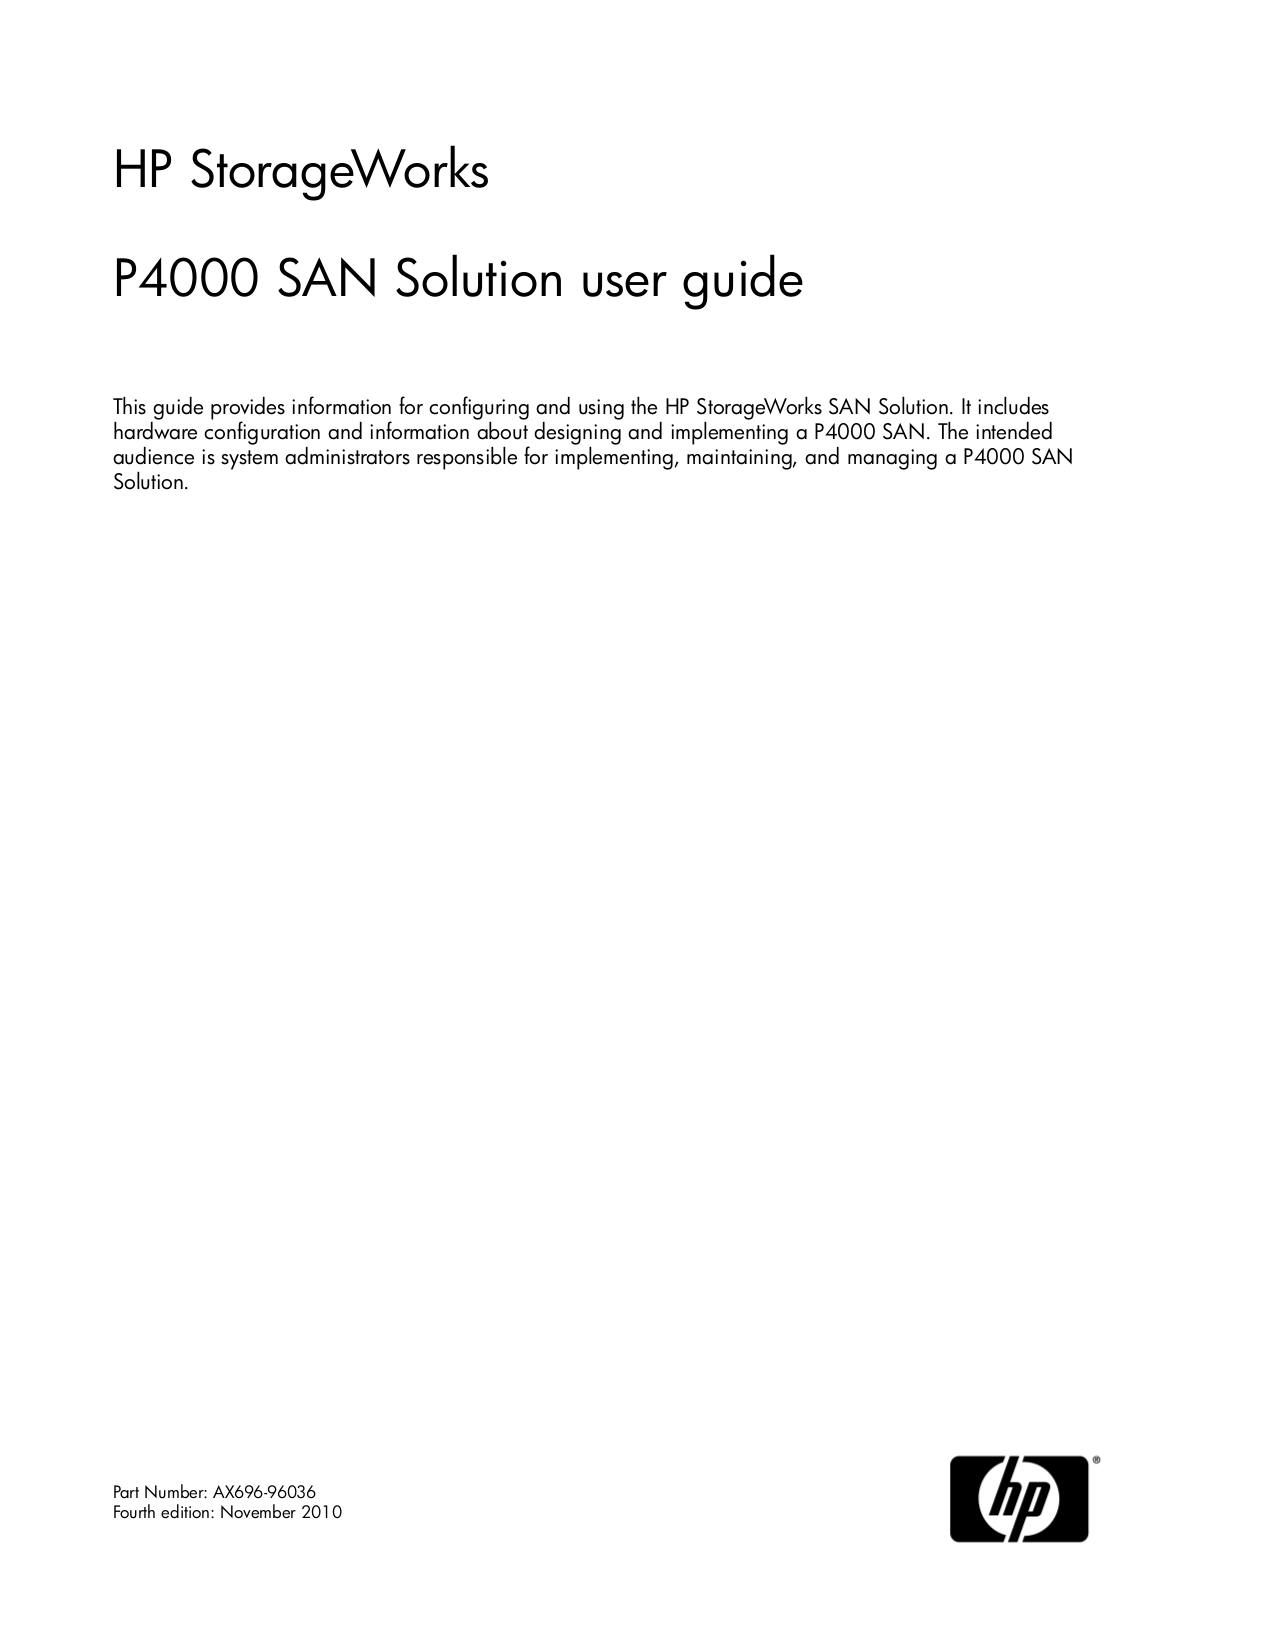 pdf for Quantum Storage P4000 manual